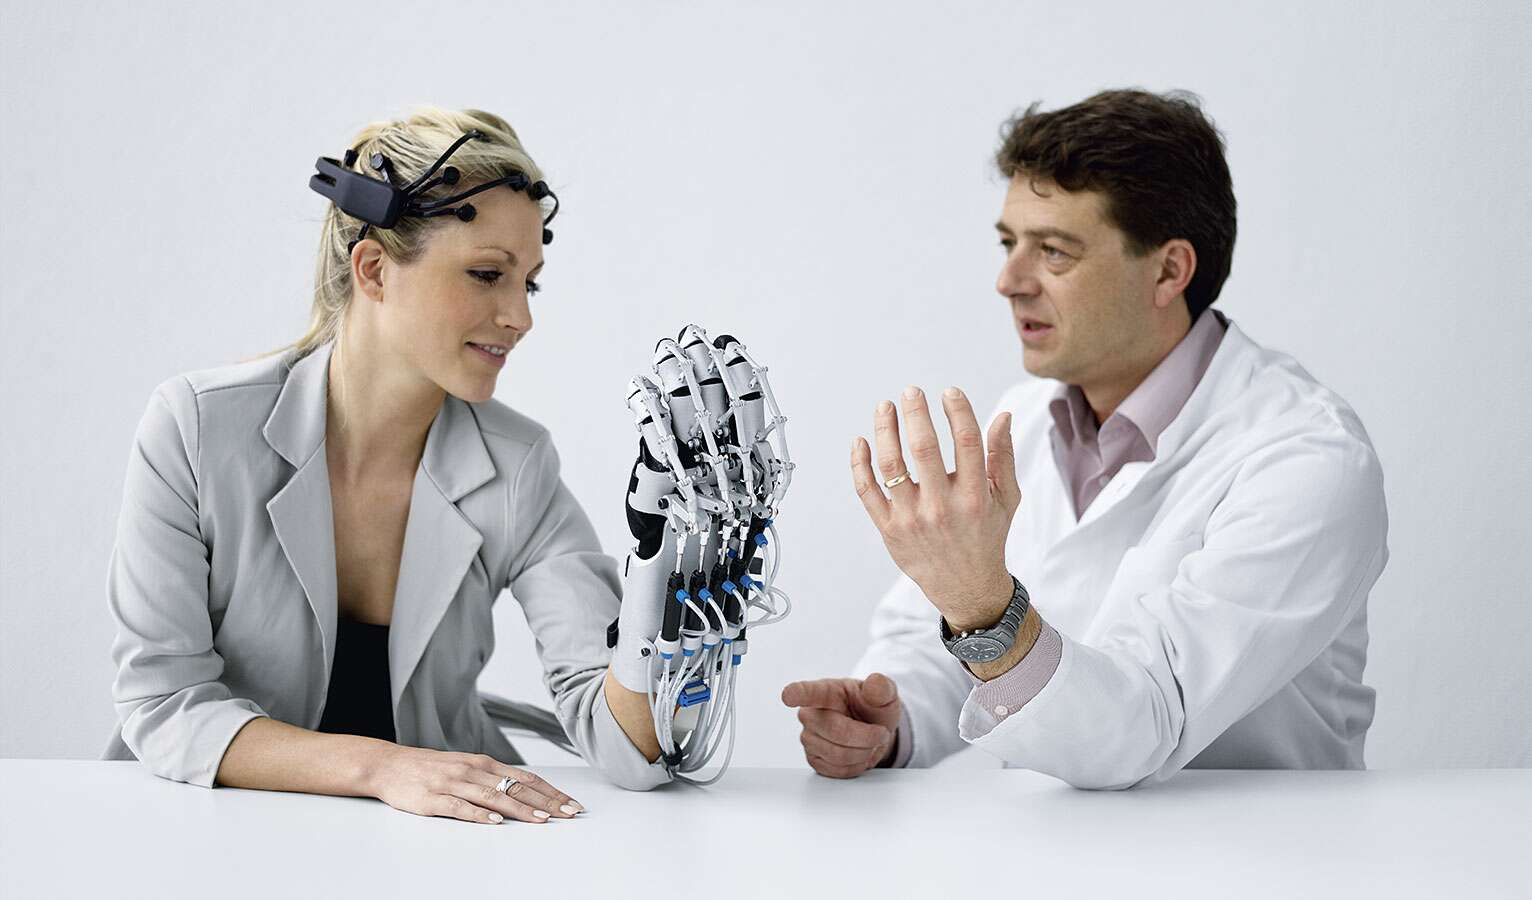 Training the brain and muscles: ExoHand combined with a brain-computer interface